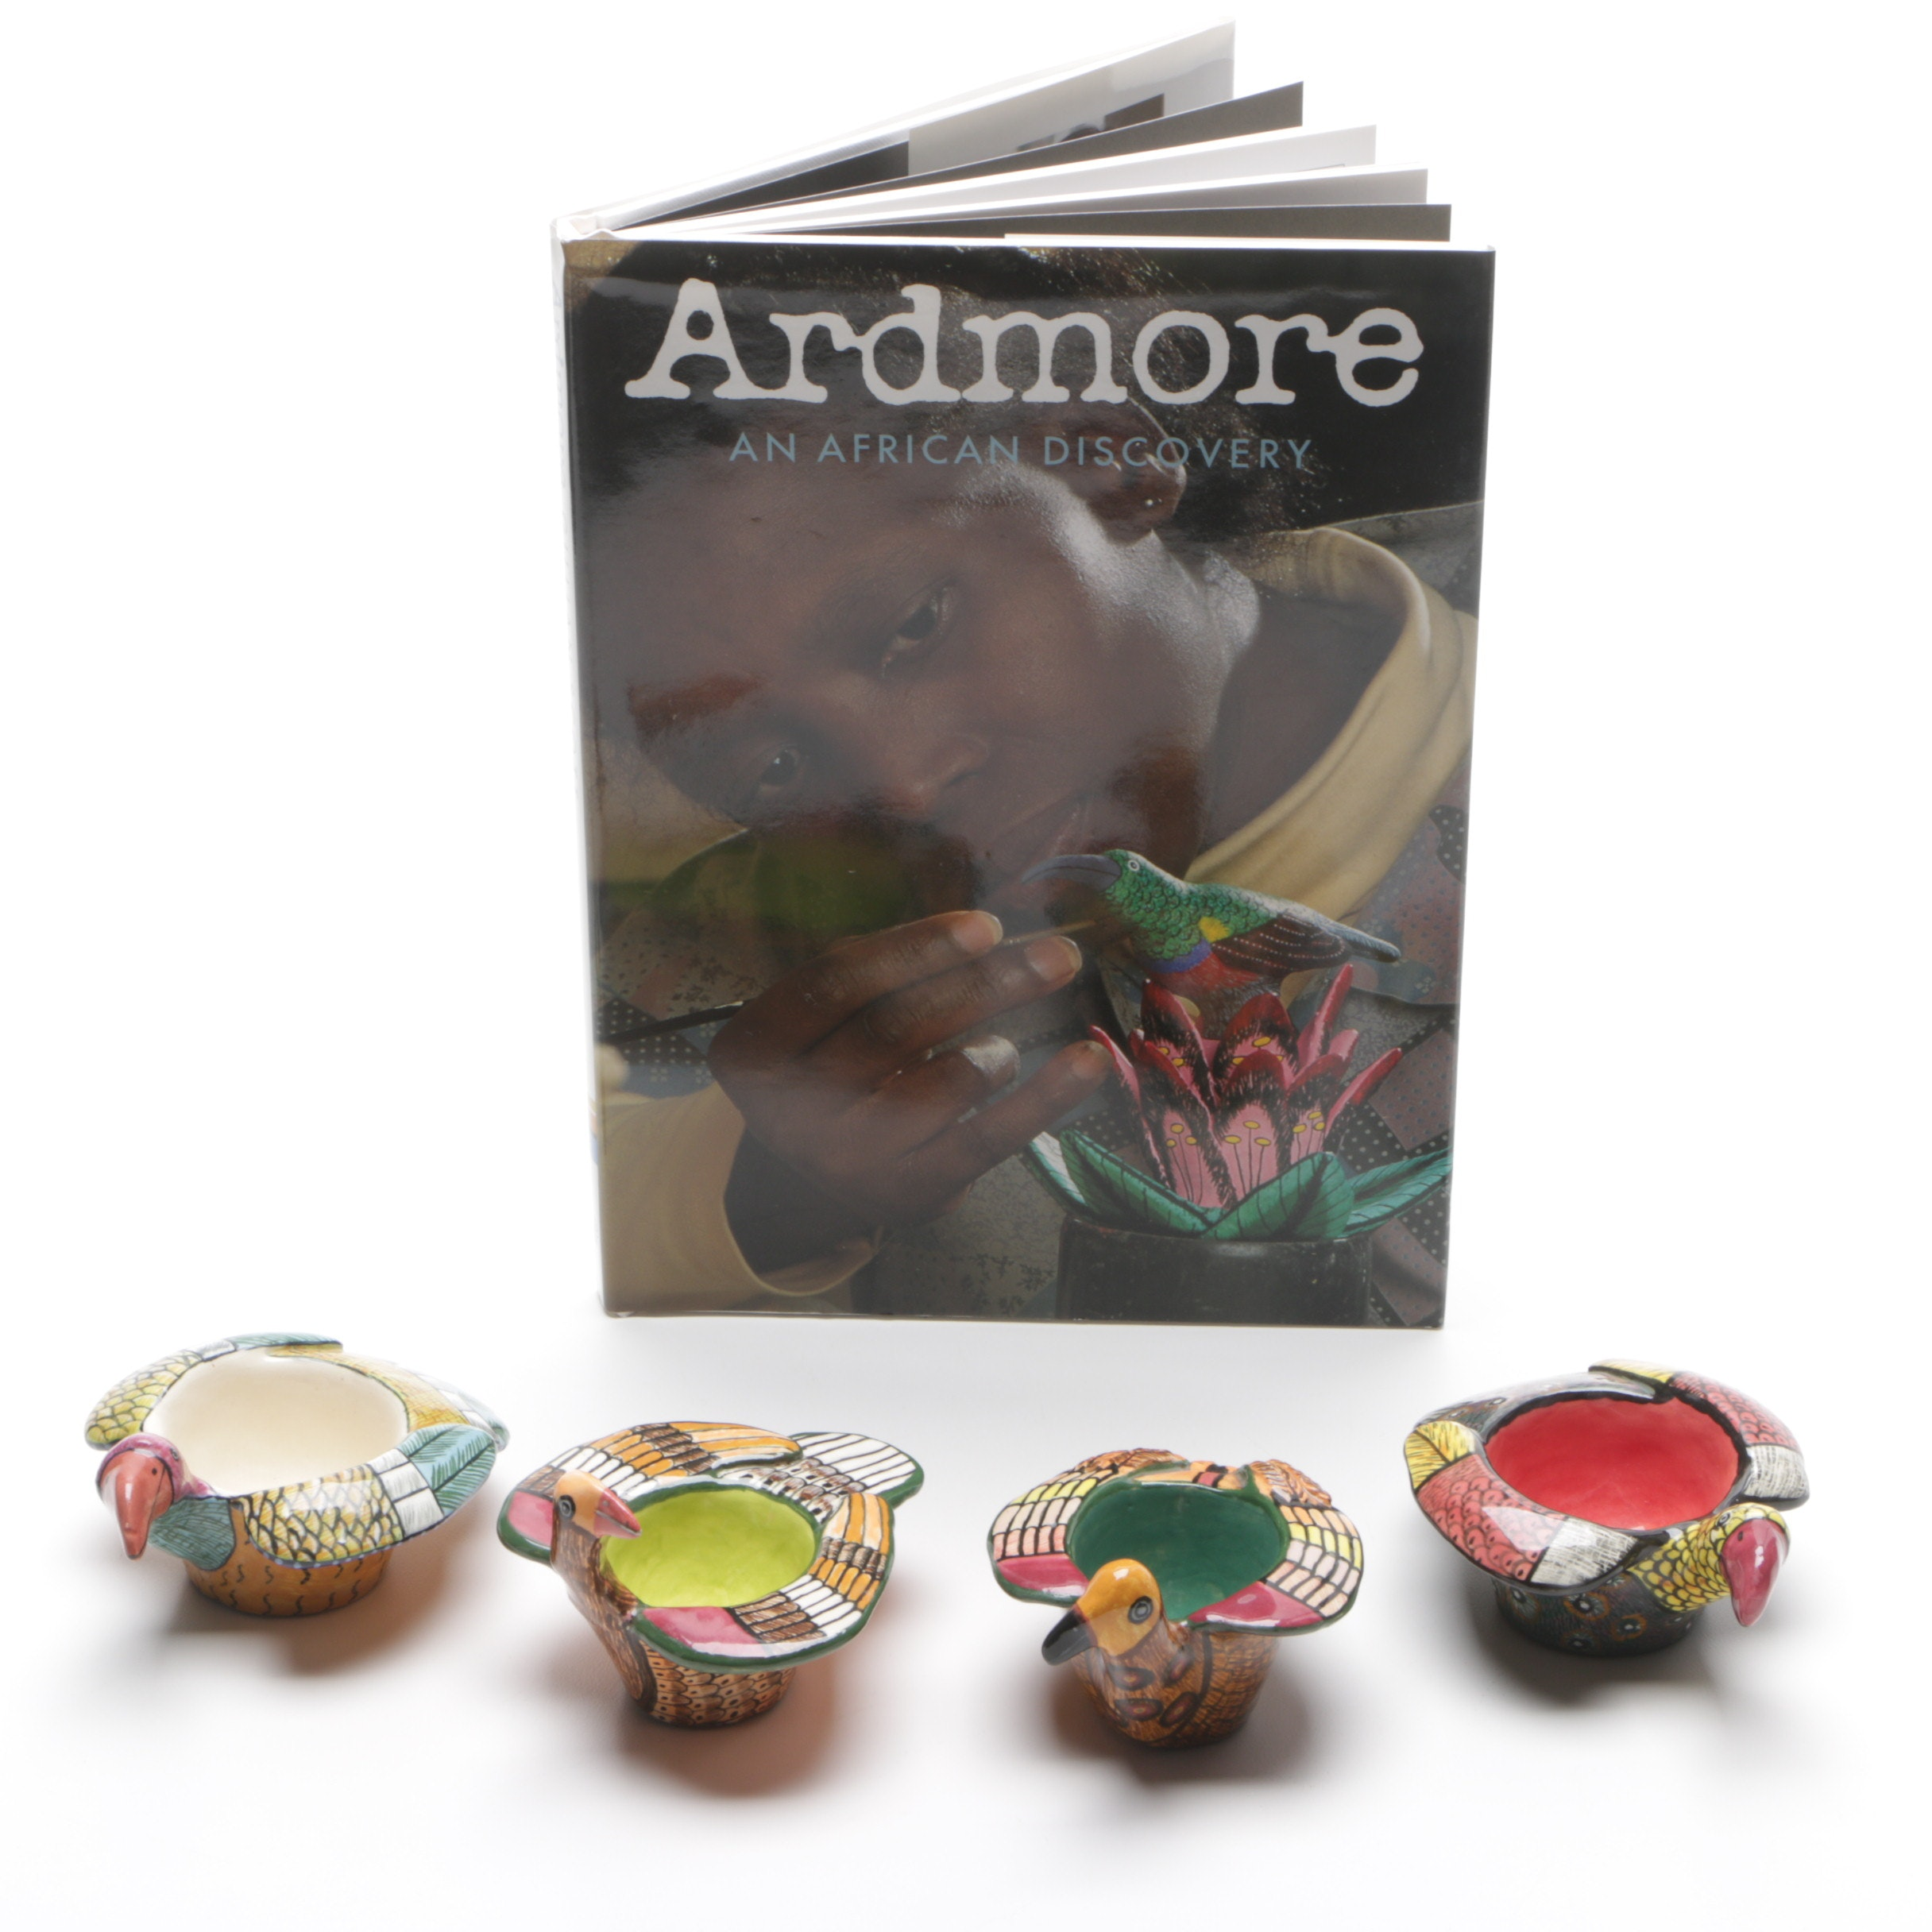 """Monica Ardmore Studios Hand-Painted Votive Candle Holders and """"Ardmore"""""""